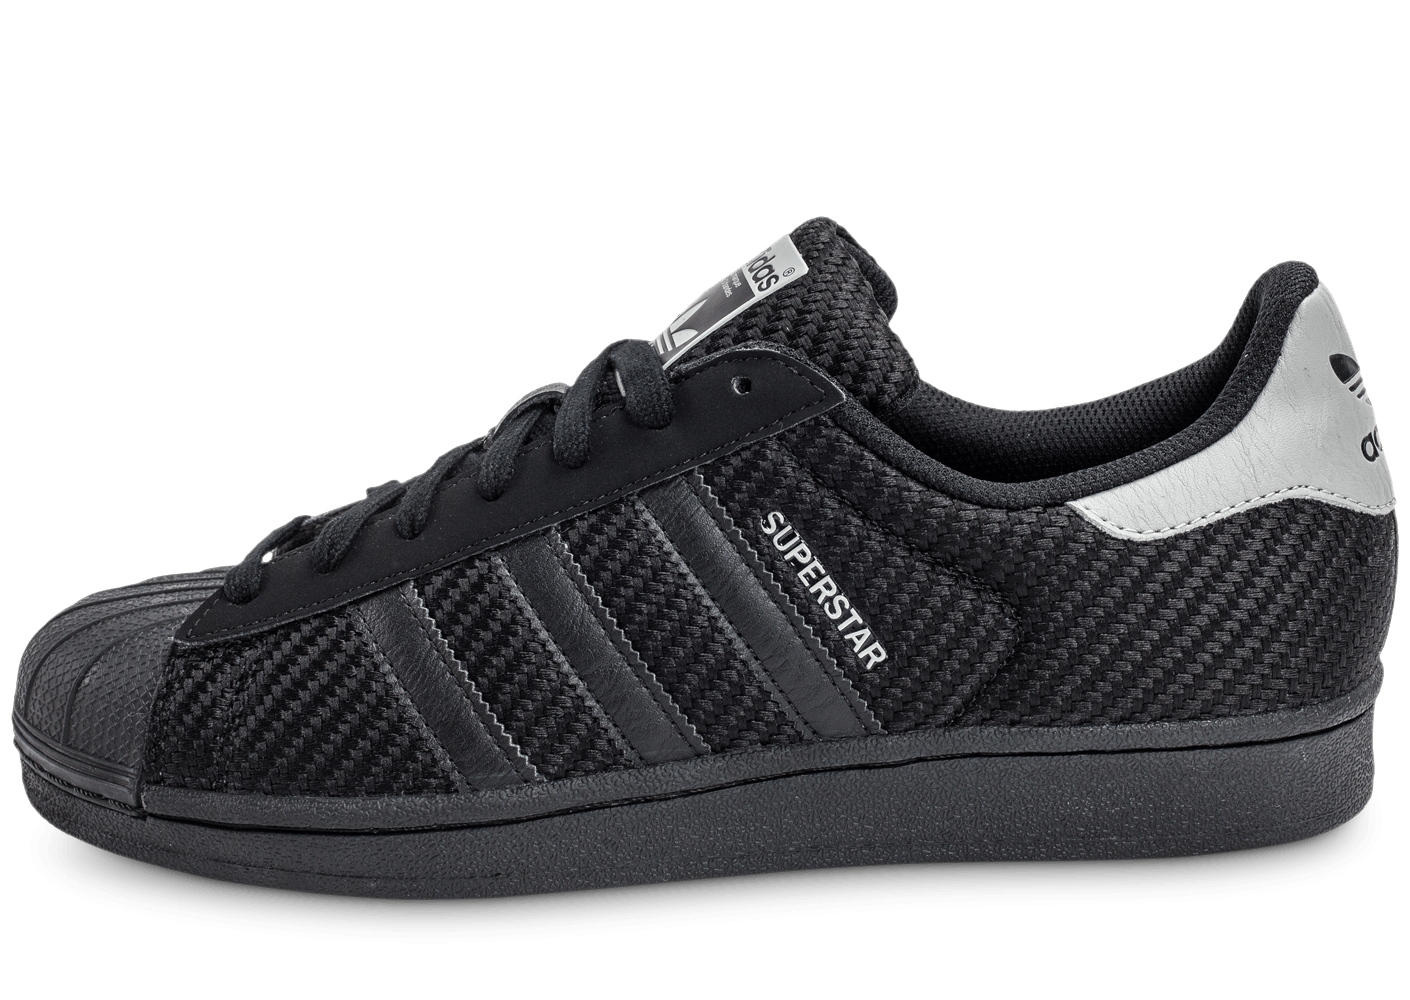 adidas superstar txt noire chaussures homme chausport. Black Bedroom Furniture Sets. Home Design Ideas